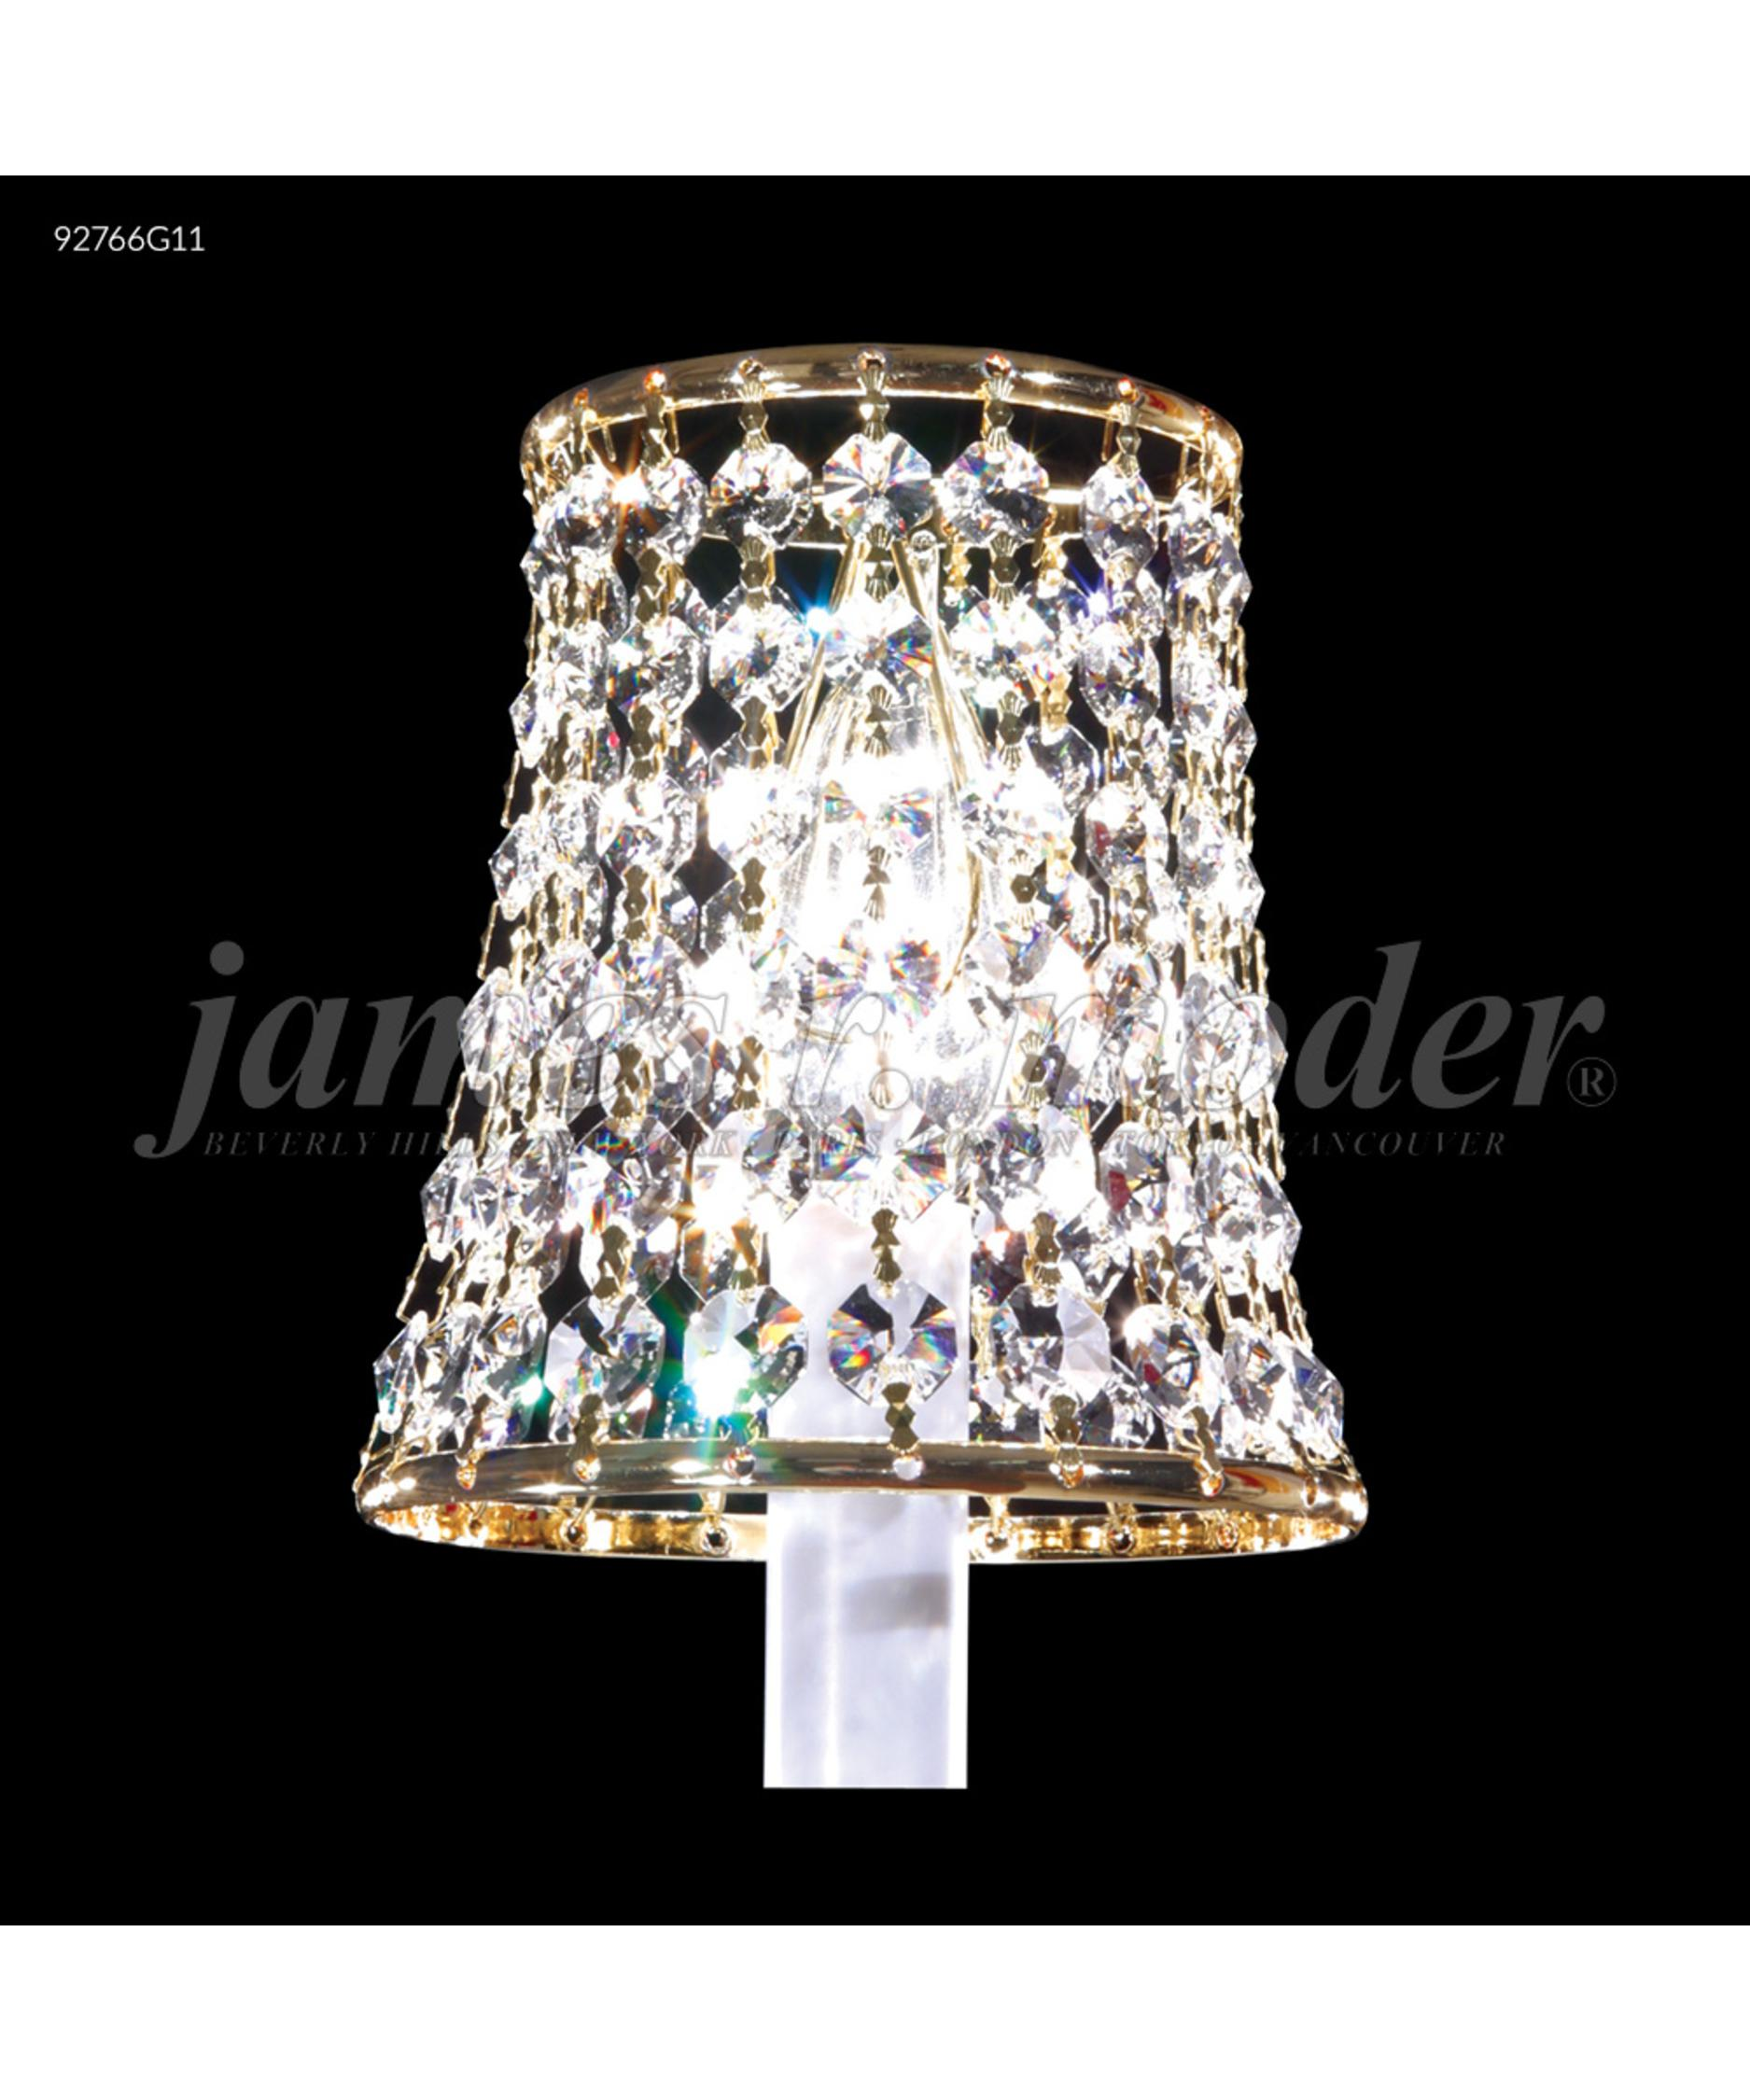 small chandeliers chandelier shades mini accent table lamps replacement lamp glass pottery barn black coffee ese ikea retro side mosaic kitchen patio furniture for less dining set